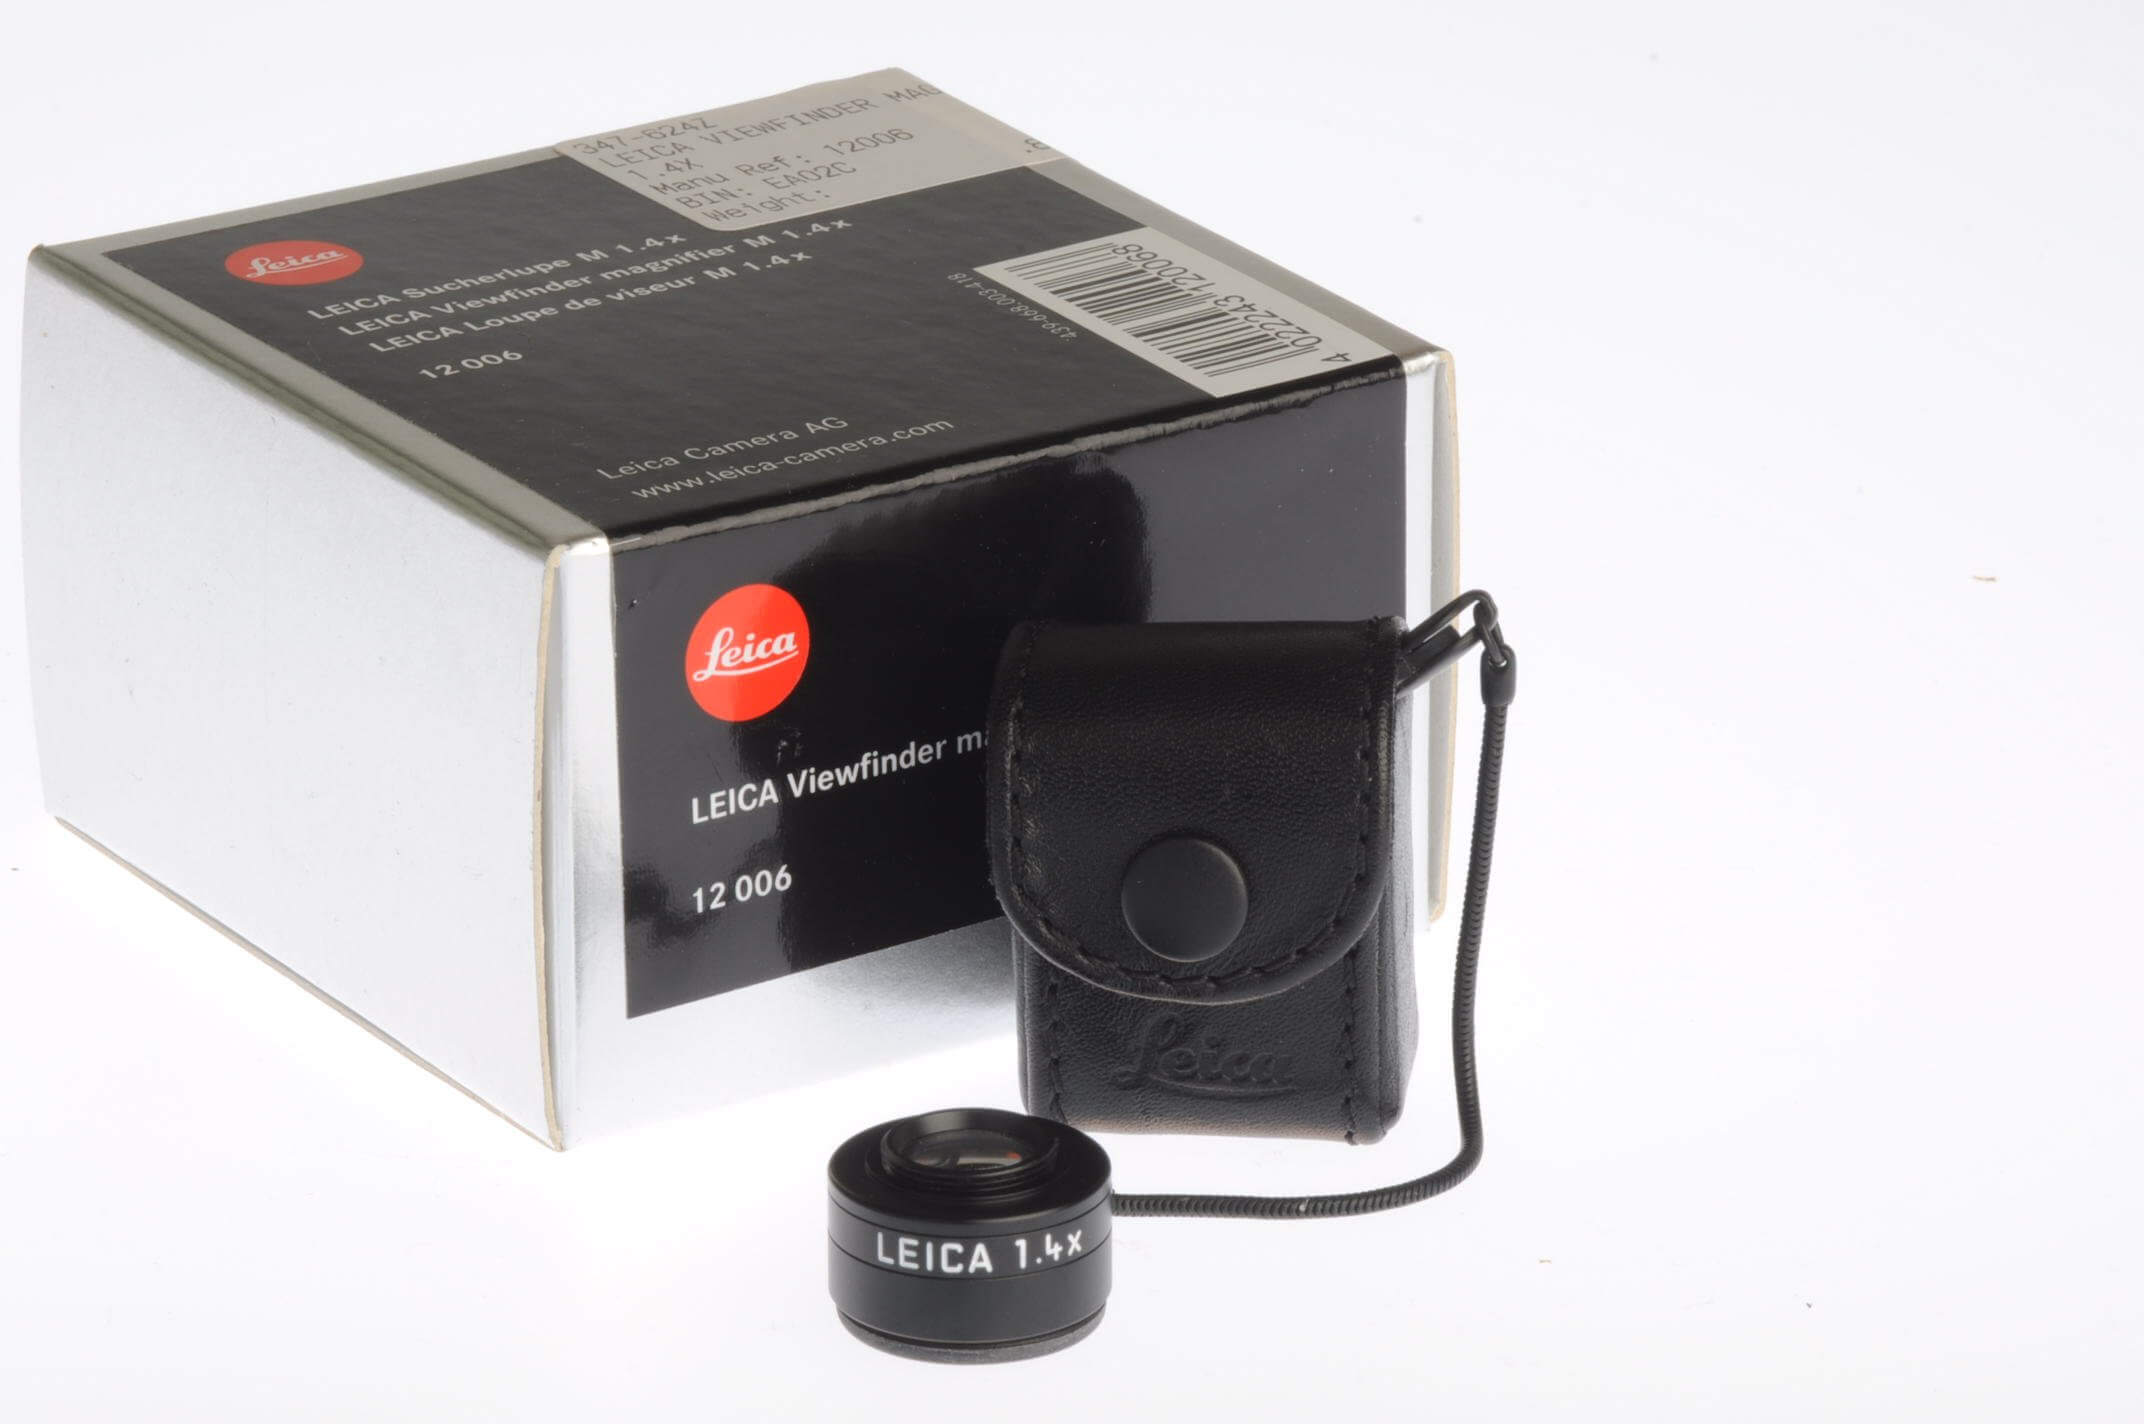 Leica 1.4x viewfinder magnifier, mint and boxed